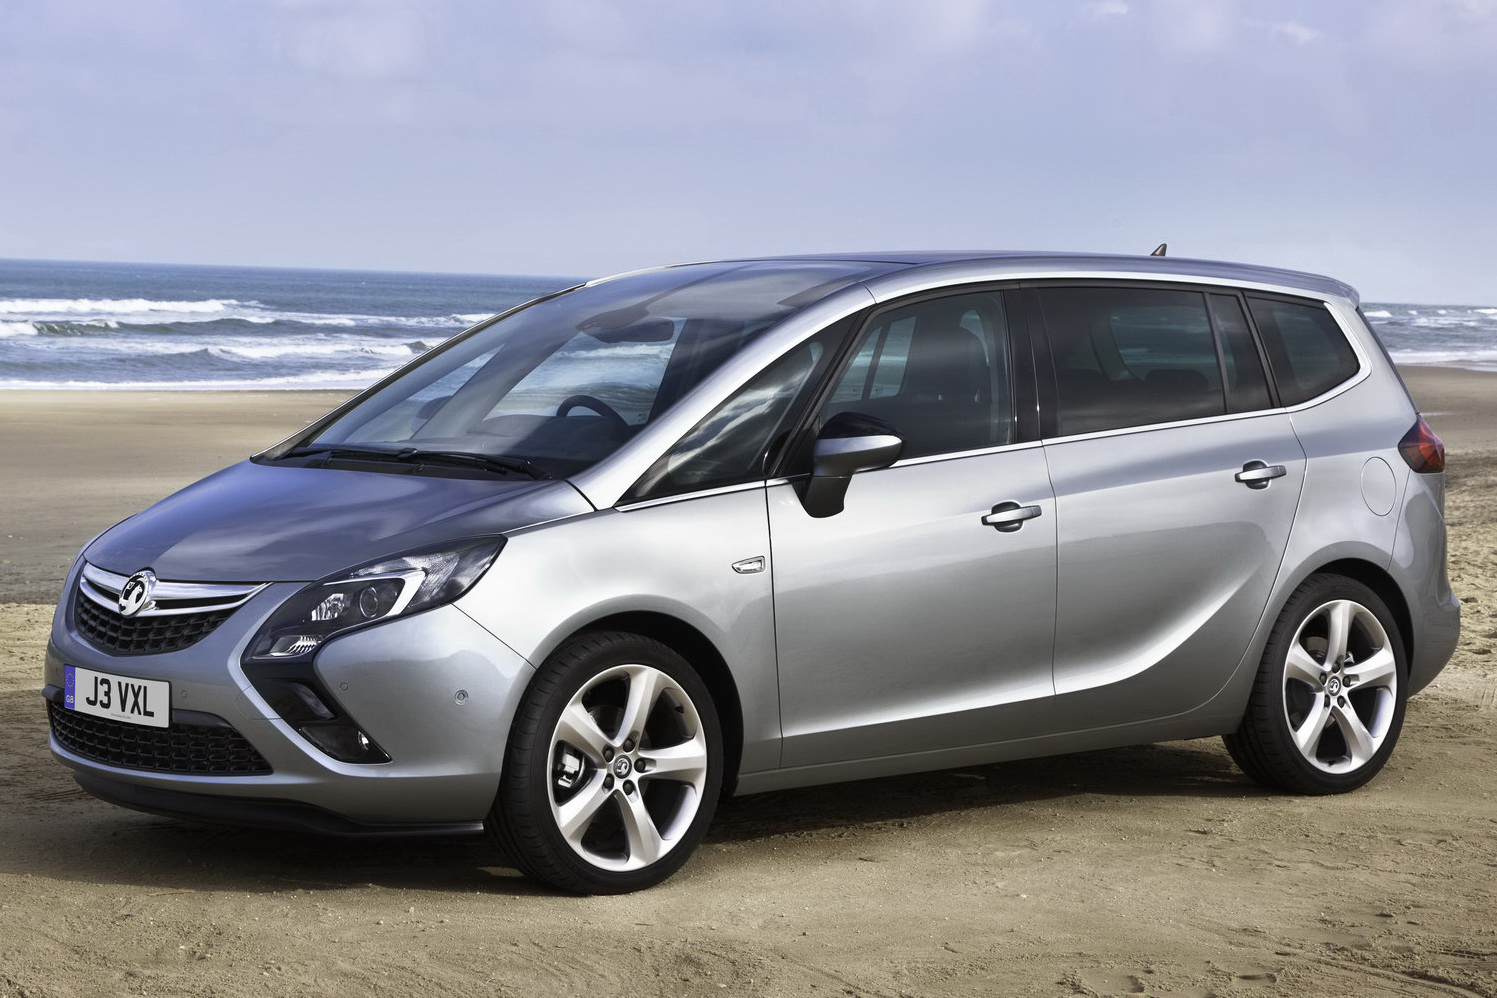 All-New 2012 Opel Zafira 7-Seater Minivan with Revised Car Upgradation Kit